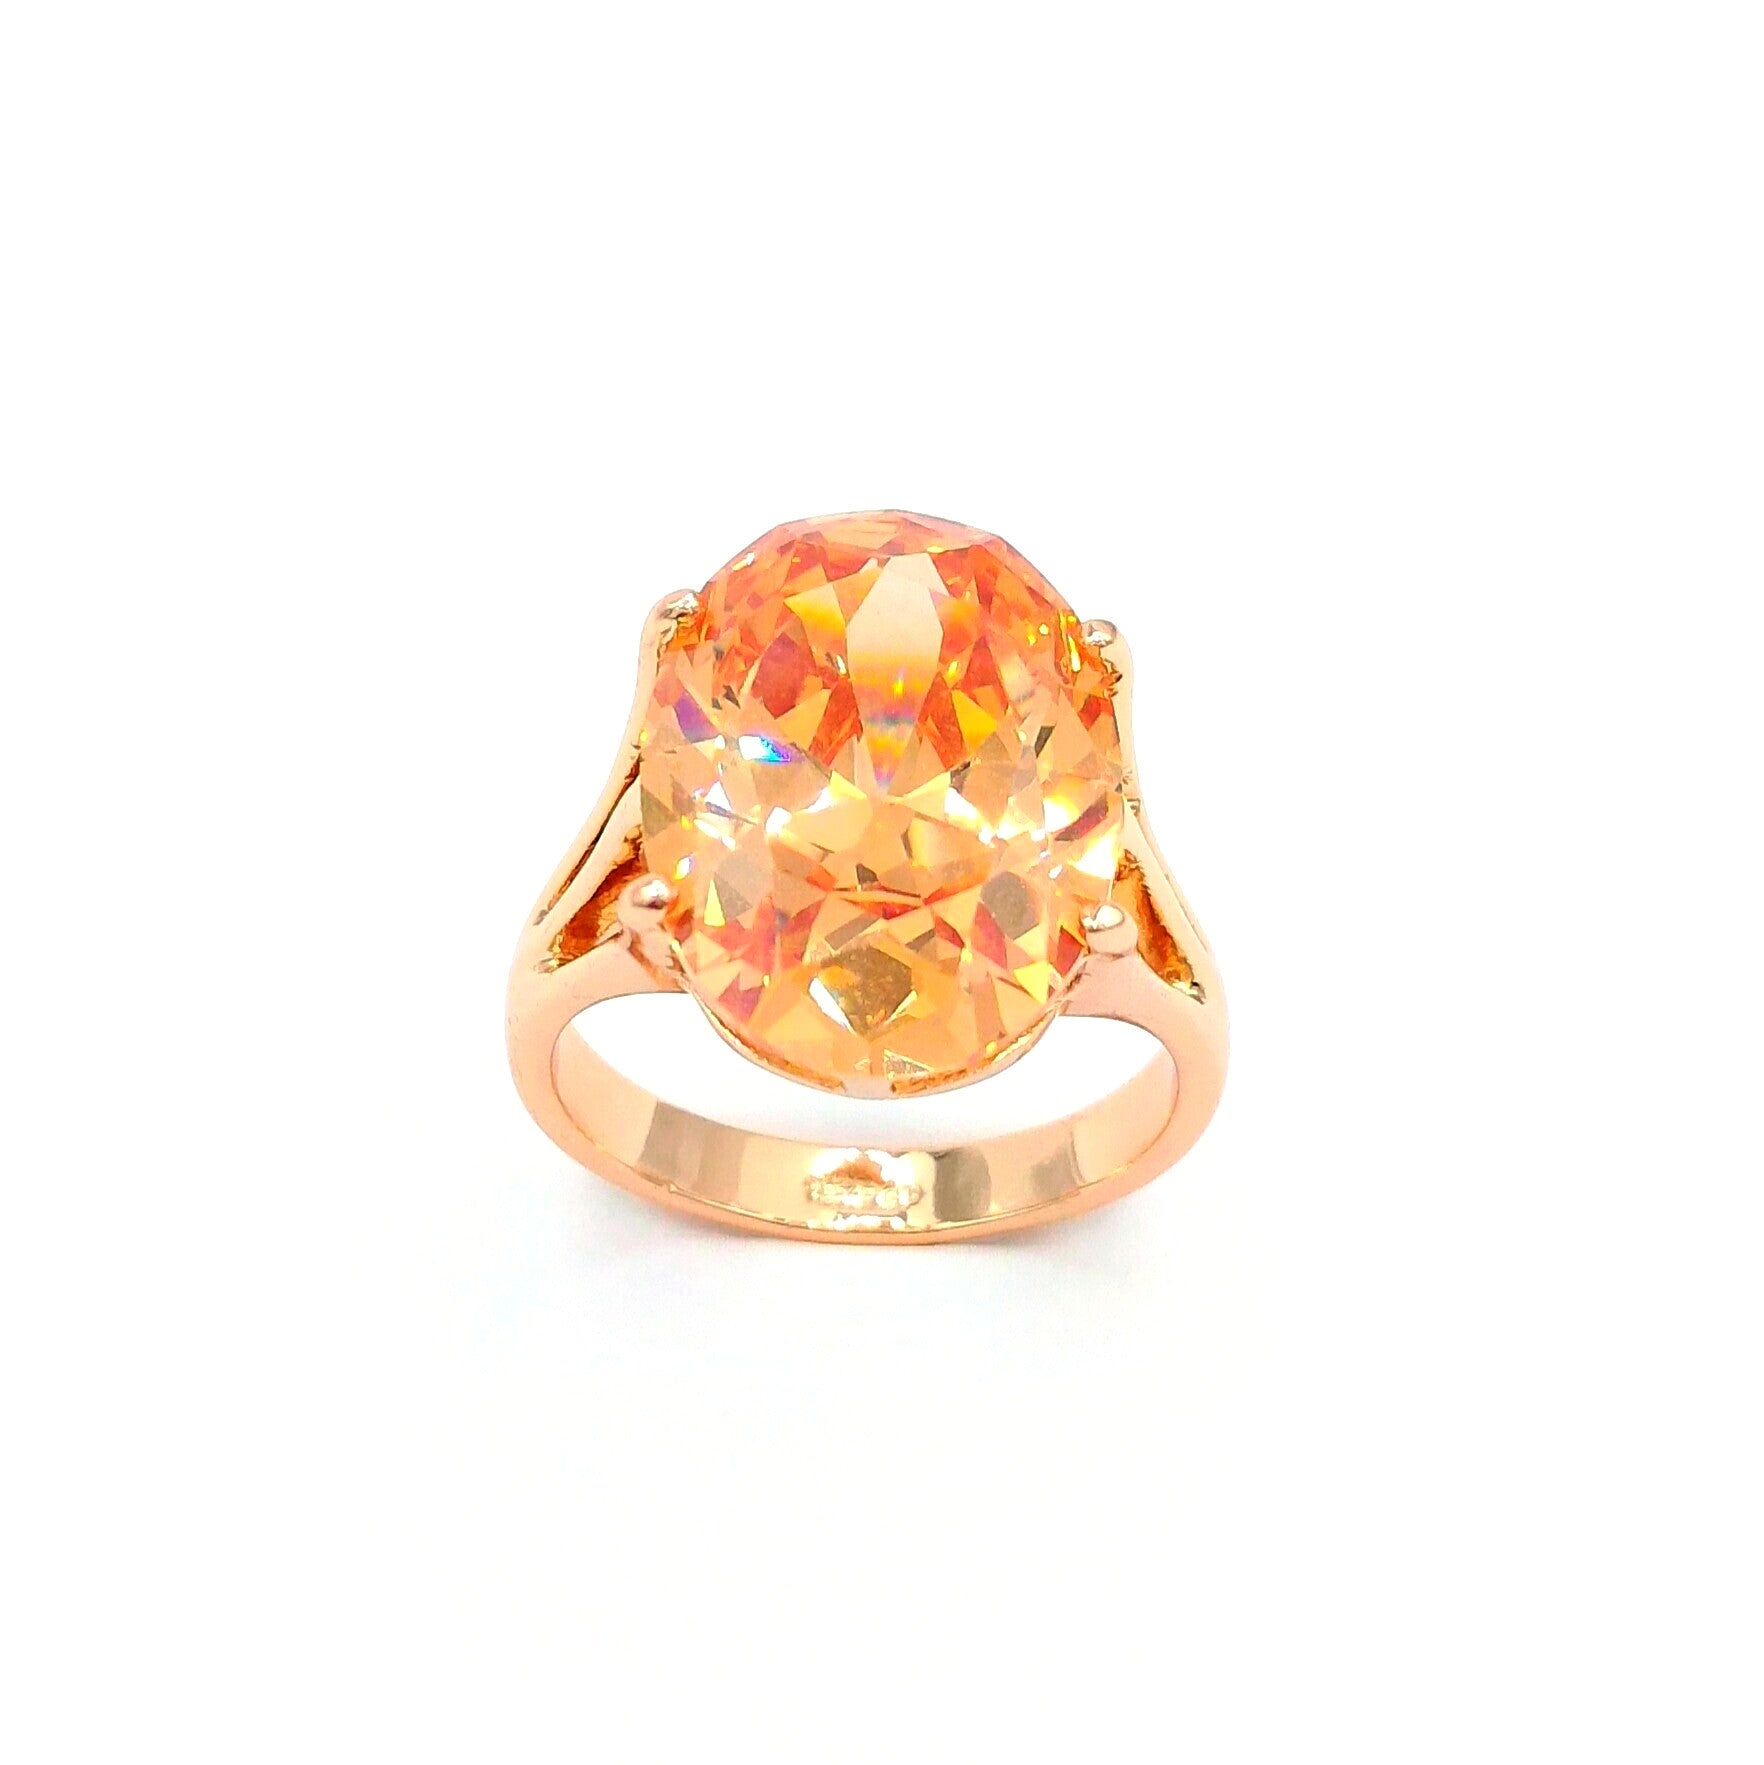 amber dainty size fashion rings green products ring engagement adjustable baltic beauty